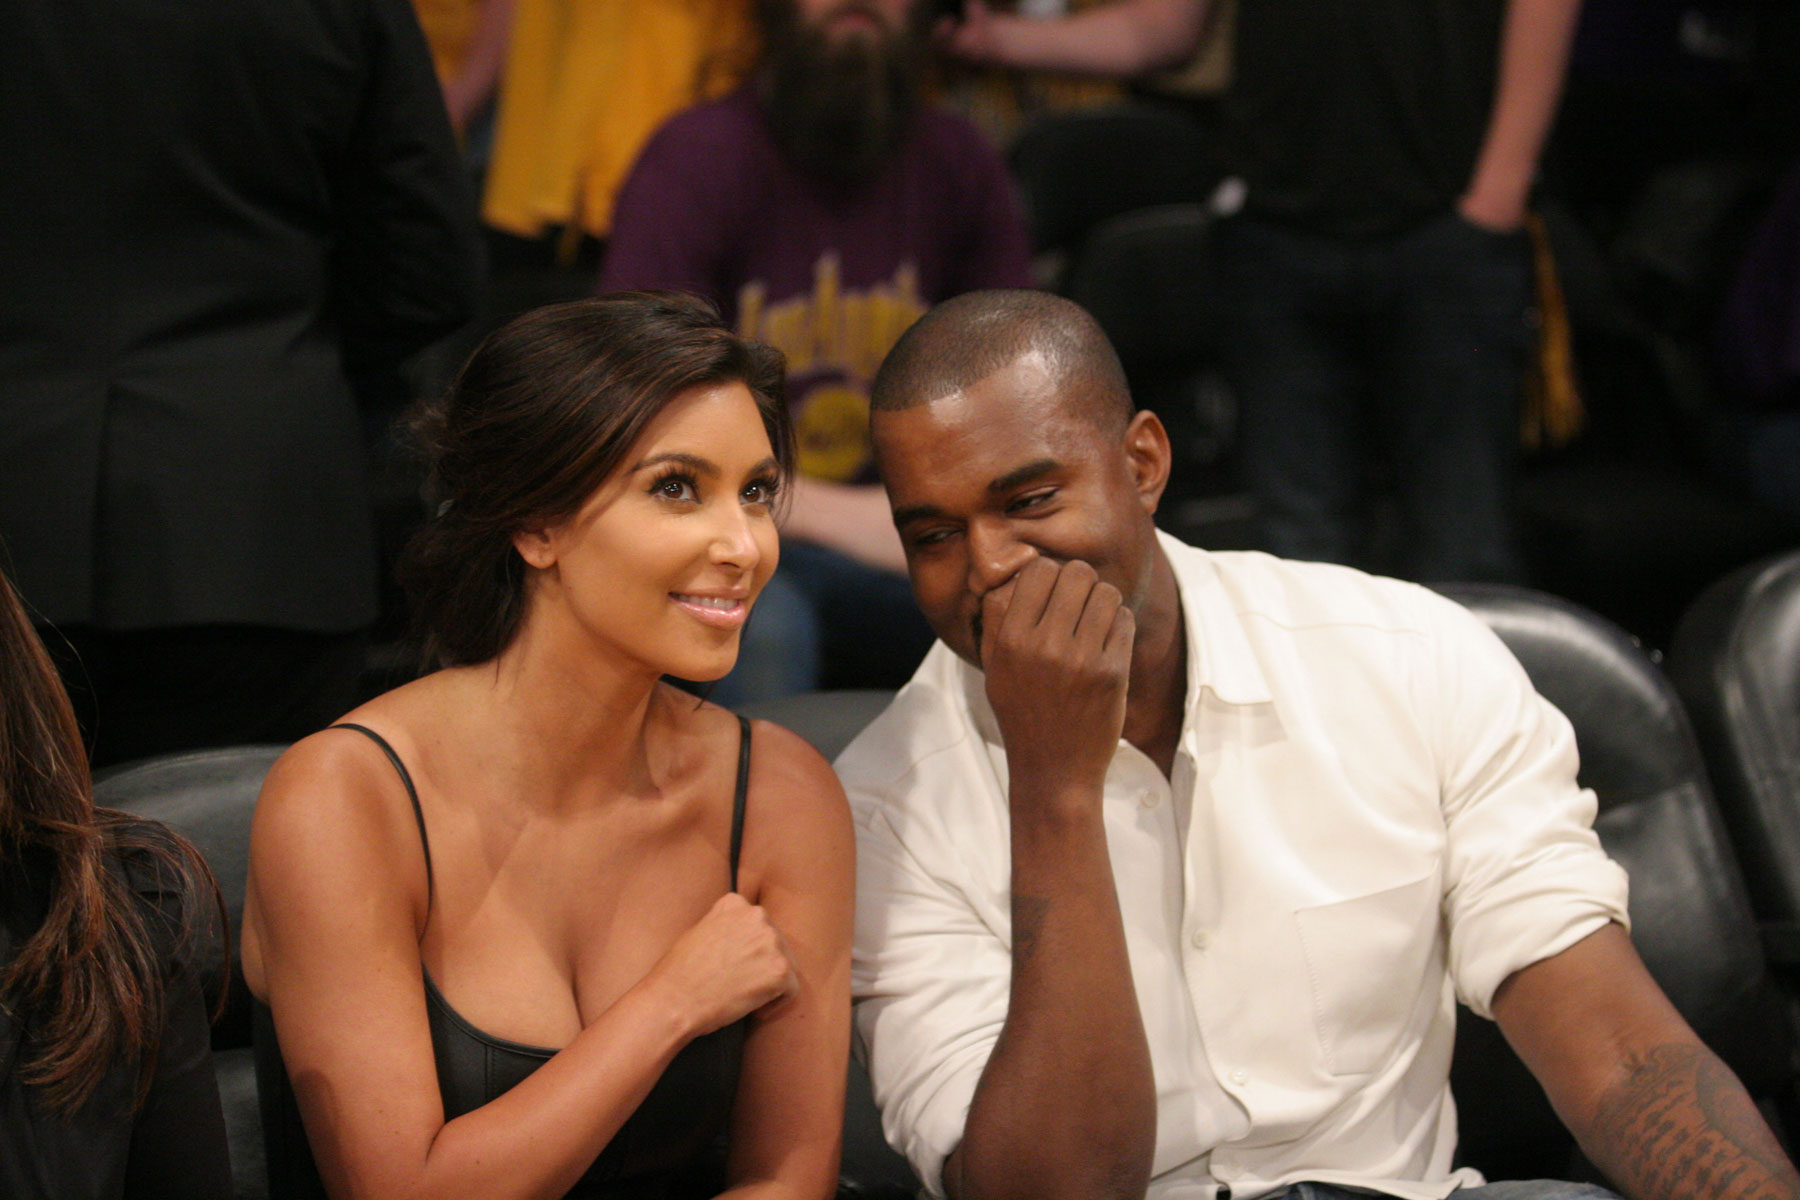 KIM KARDASHIAN and Kanye West at the Lakers Game